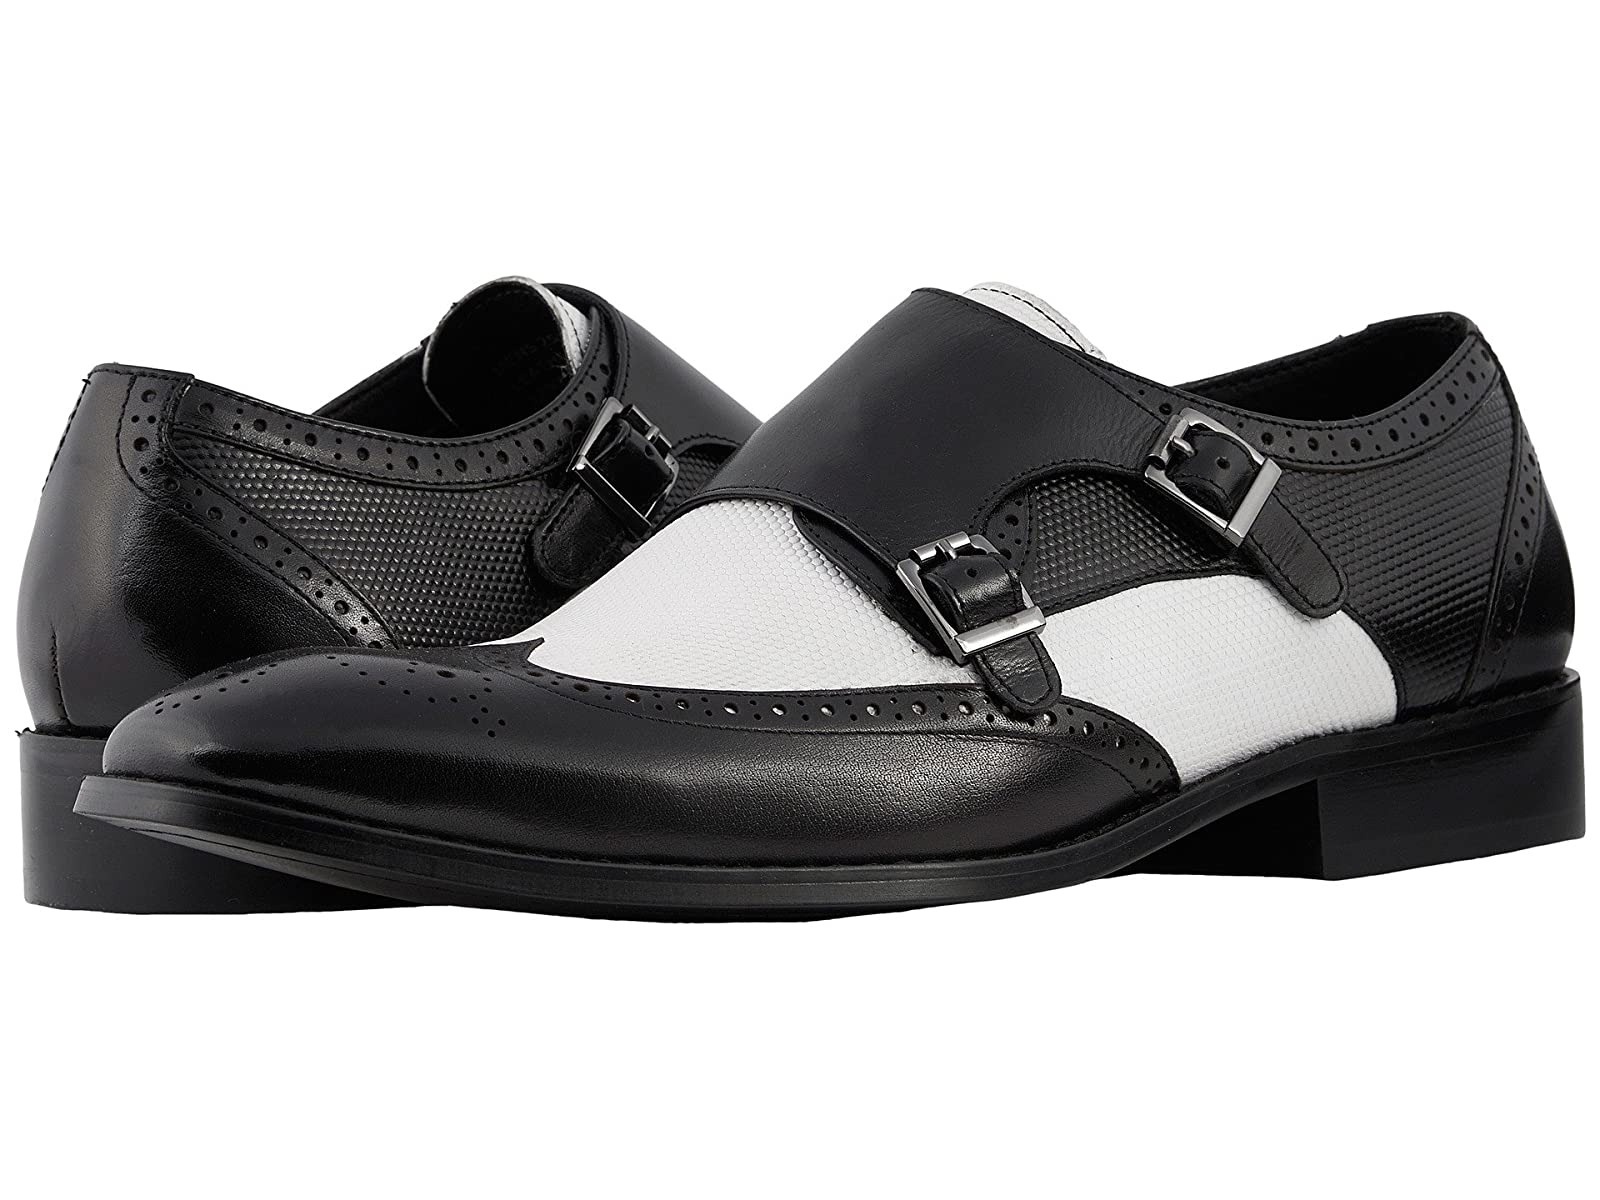 Stacy Adams LavineAtmospheric grades have affordable shoes